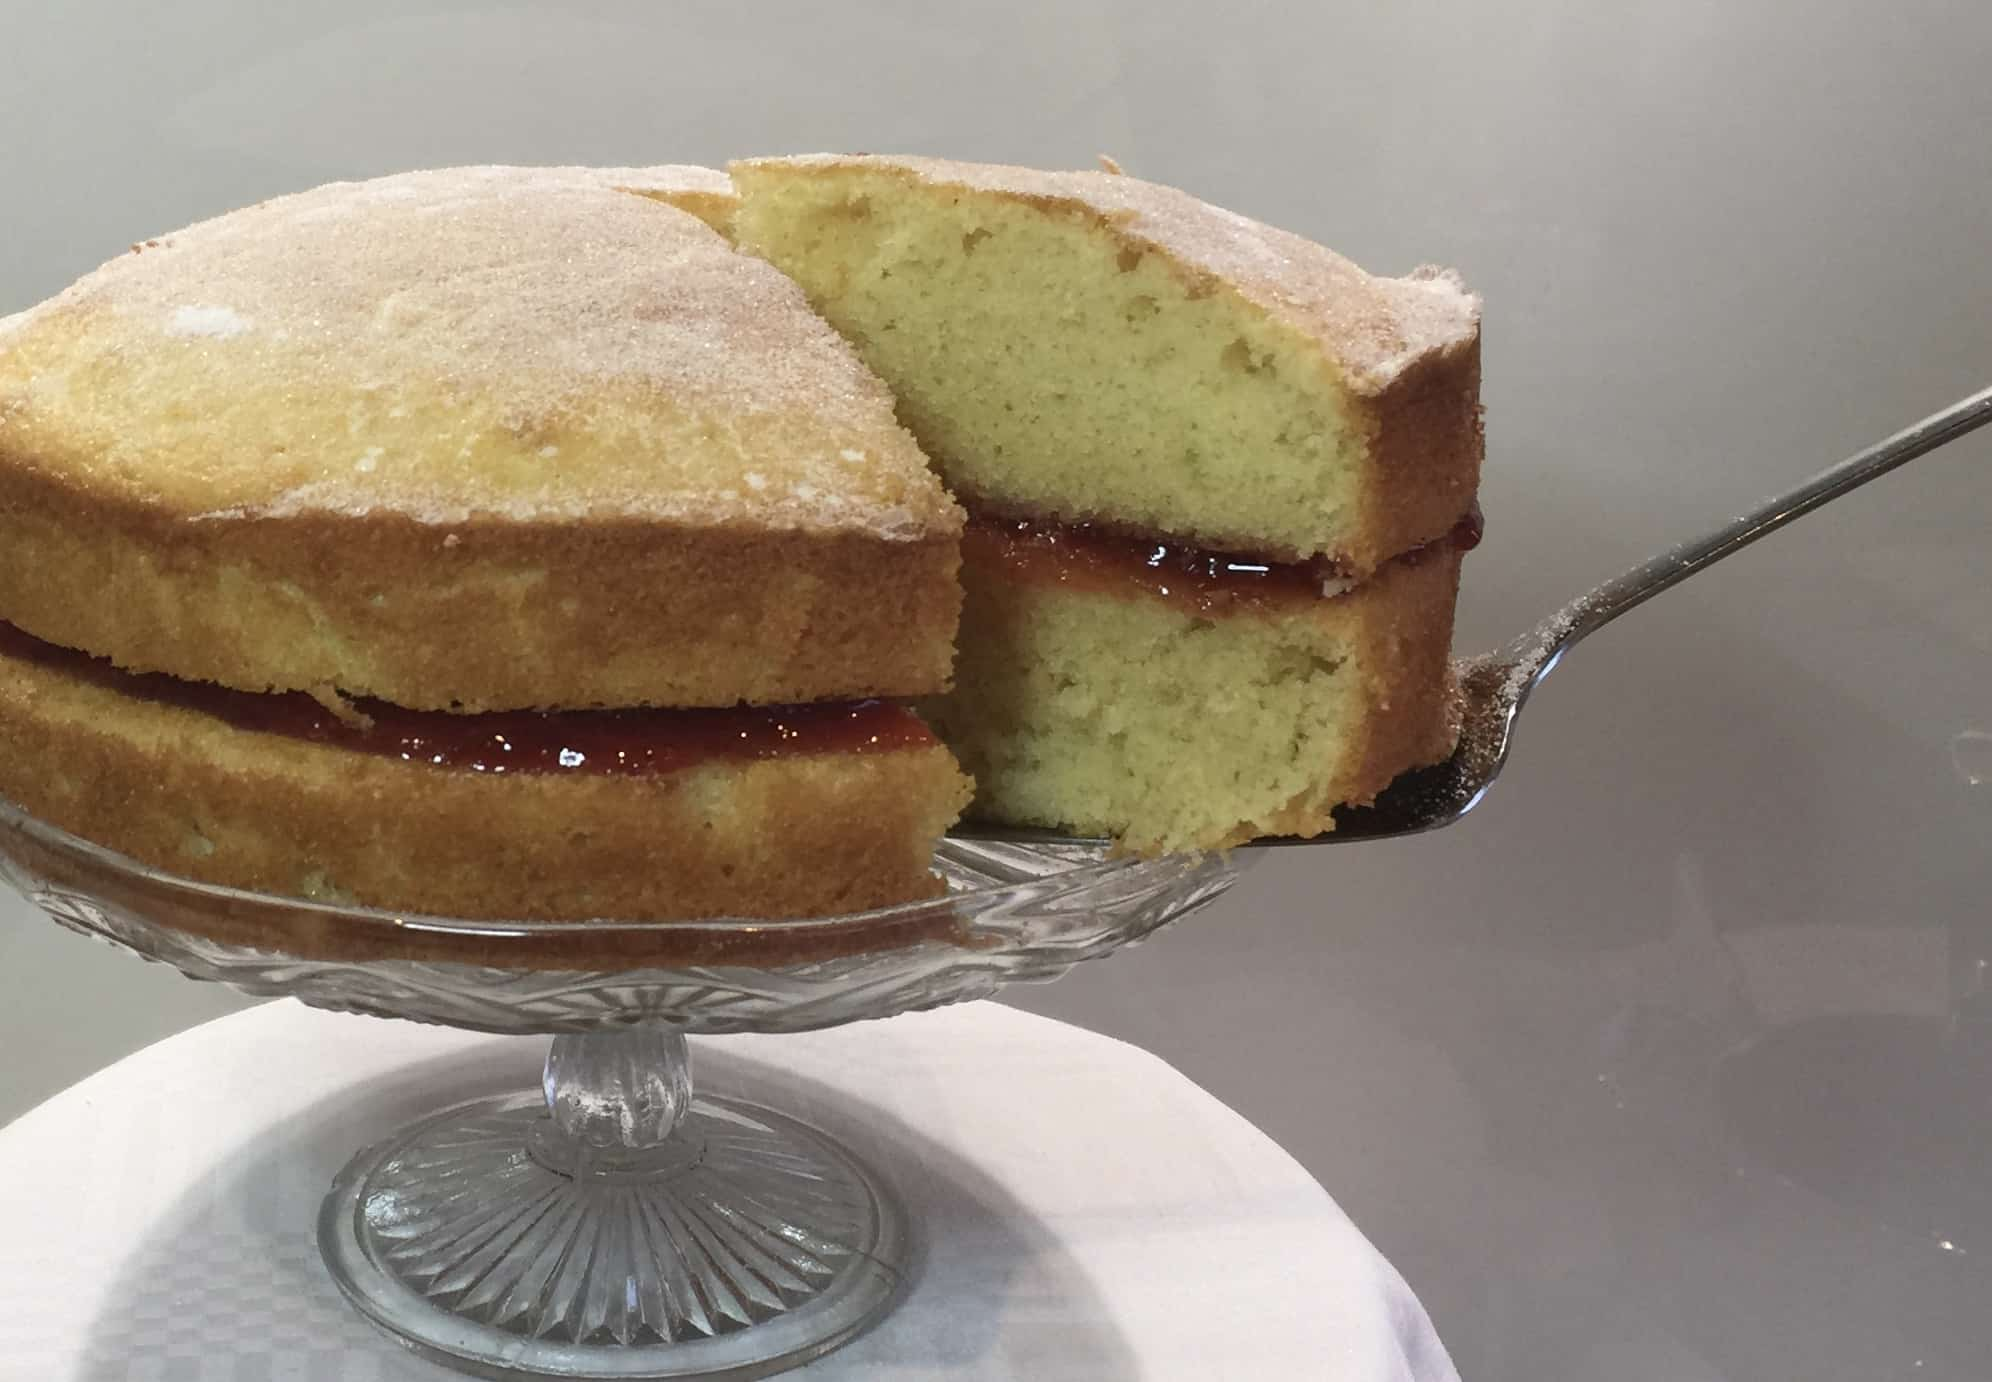 victoria sandwich on a glass cake stand with a serving knife